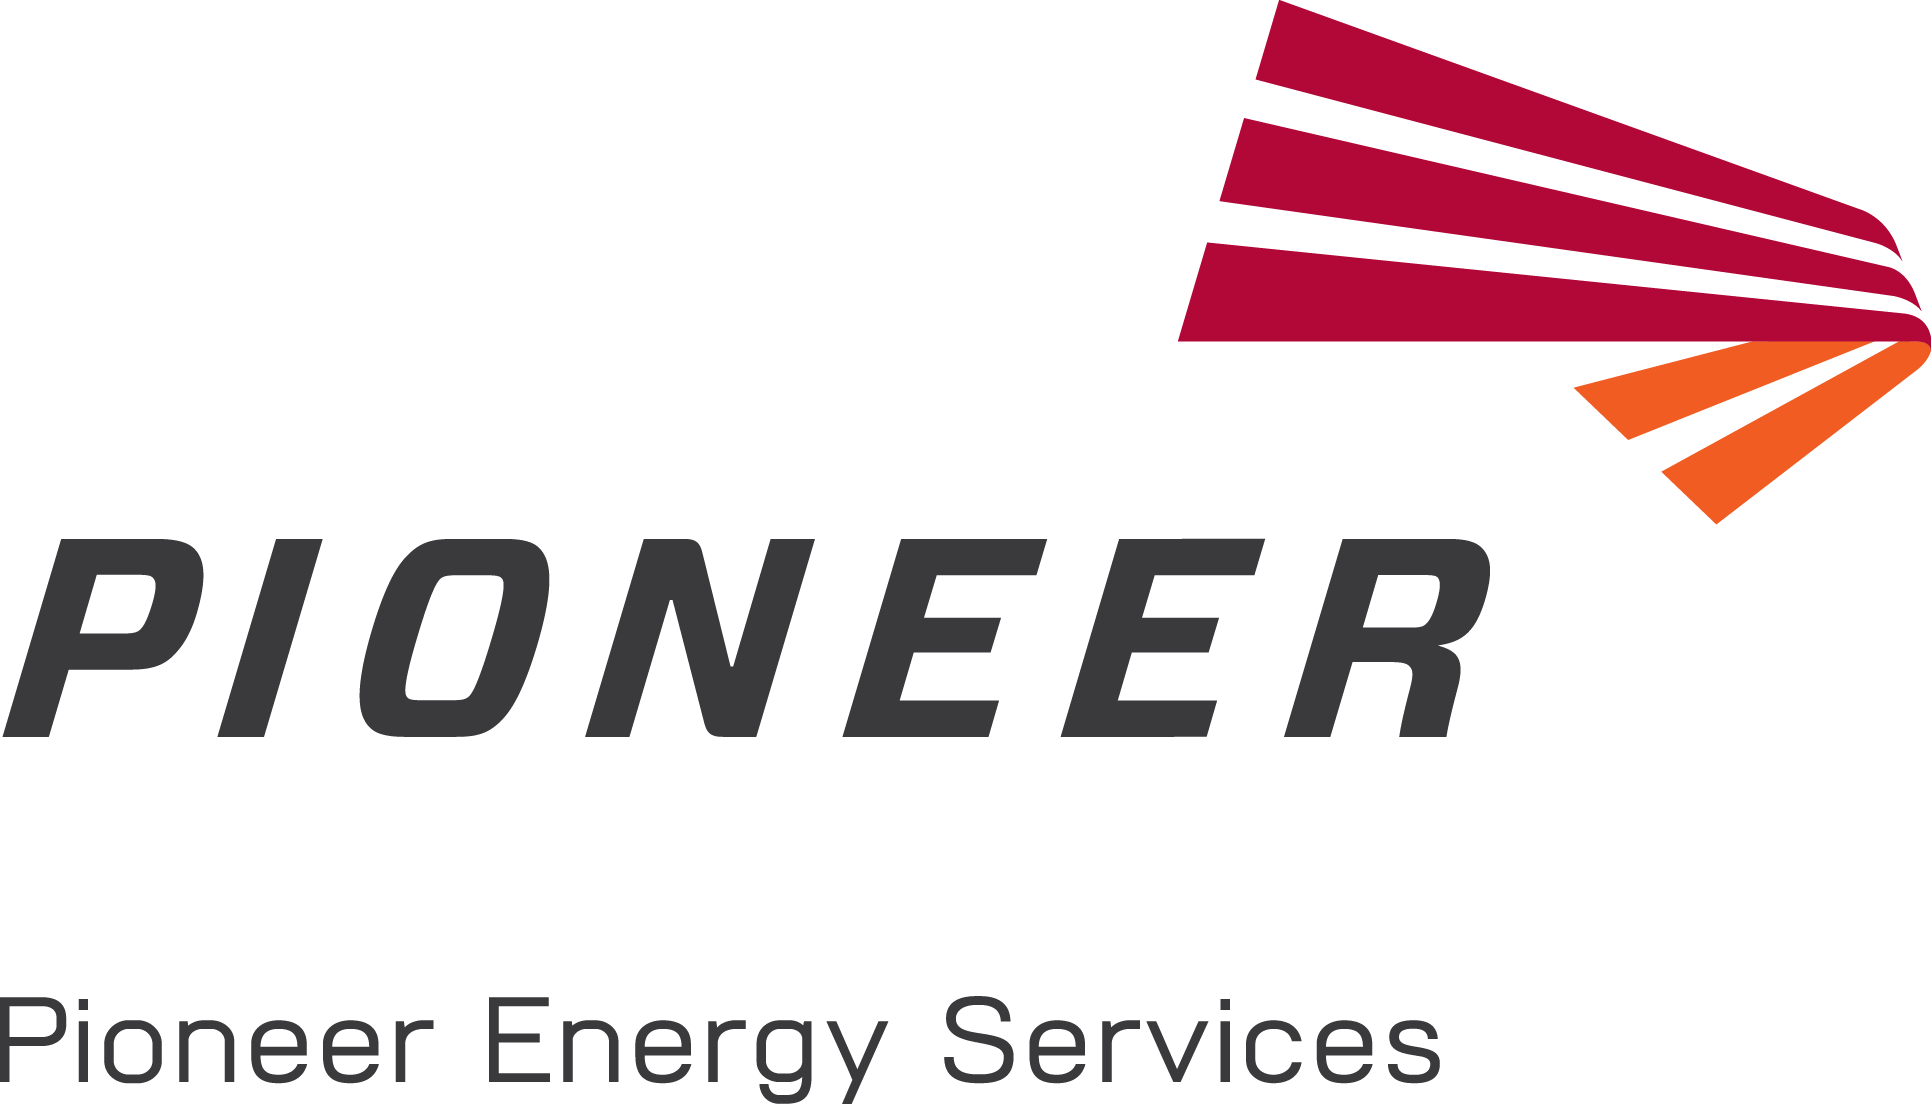 Pioneer Energy Services Corp. logo